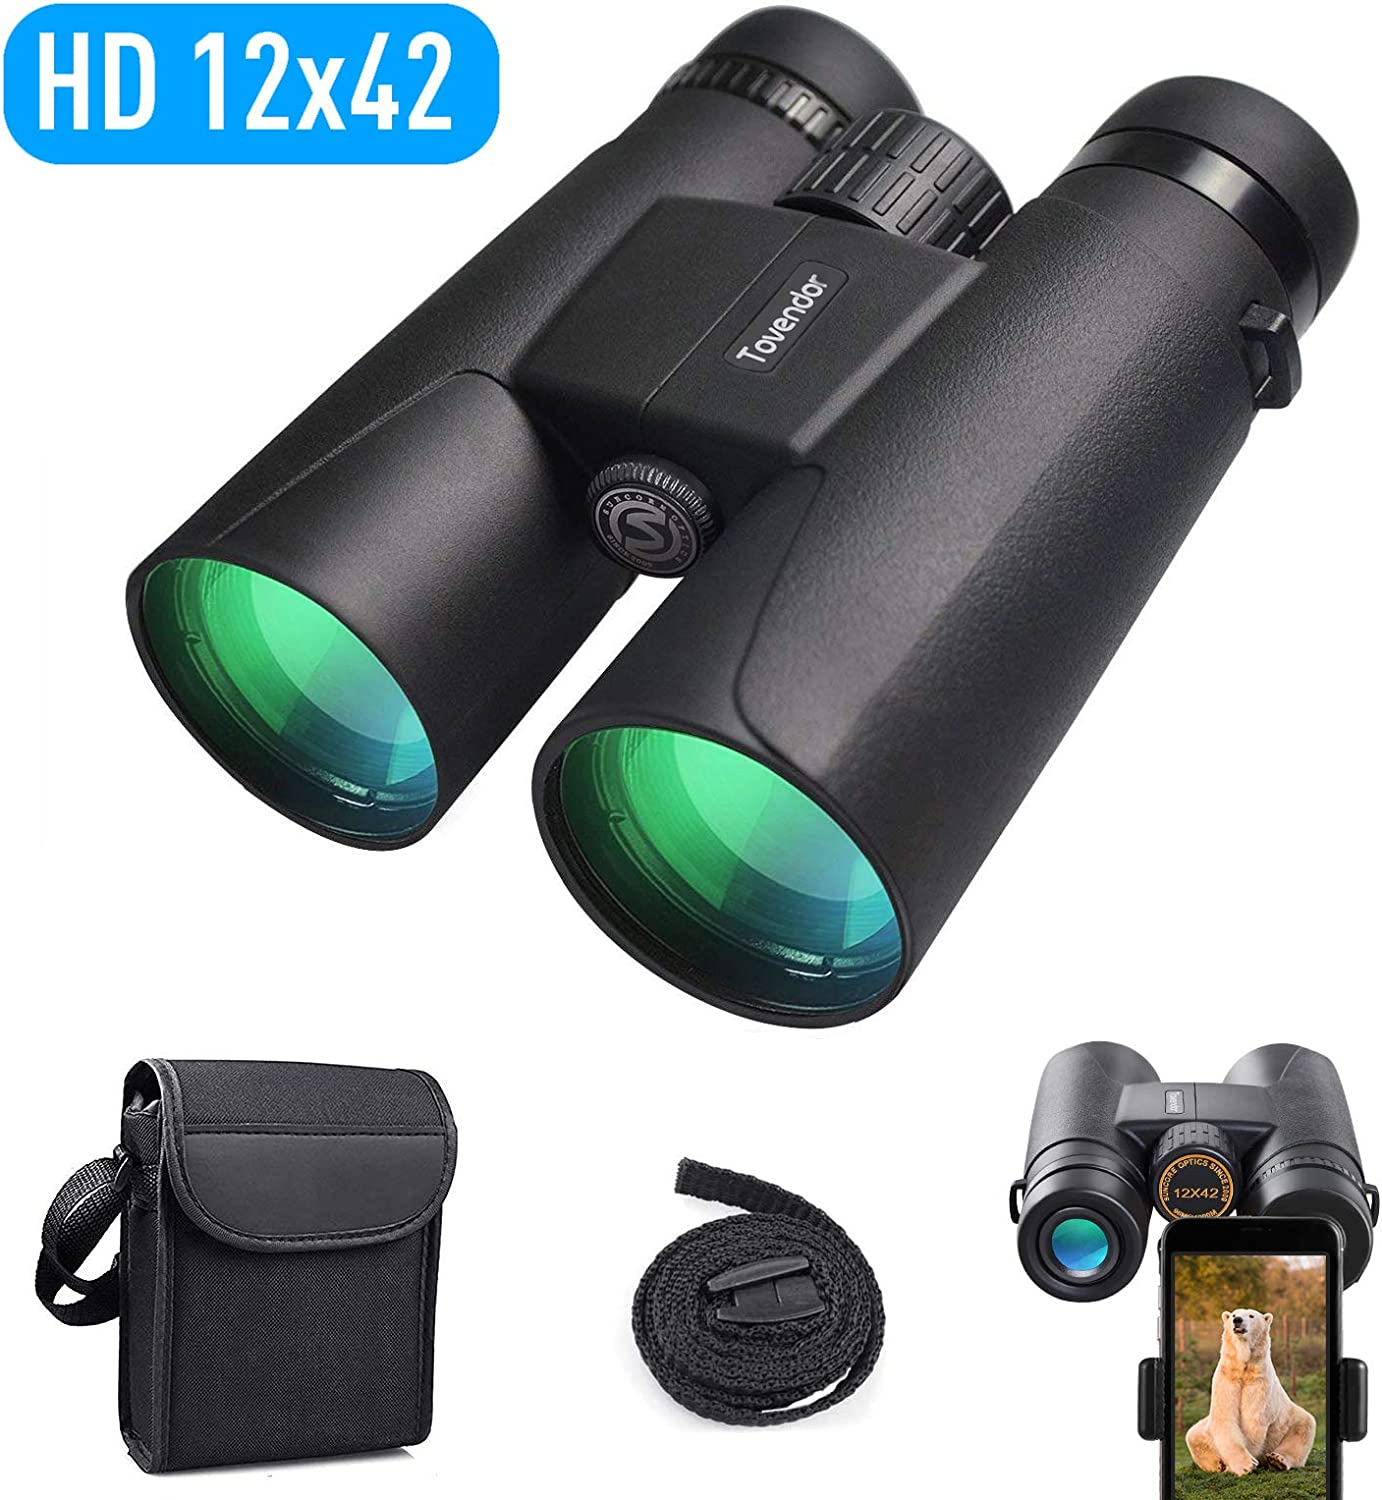 Tovendor Binoculars for Adults, 12×42 Compact Lightweight Long Distance Binocular for Bird Watching, Hunting, with Weak Light Night Vision, Phone Mount